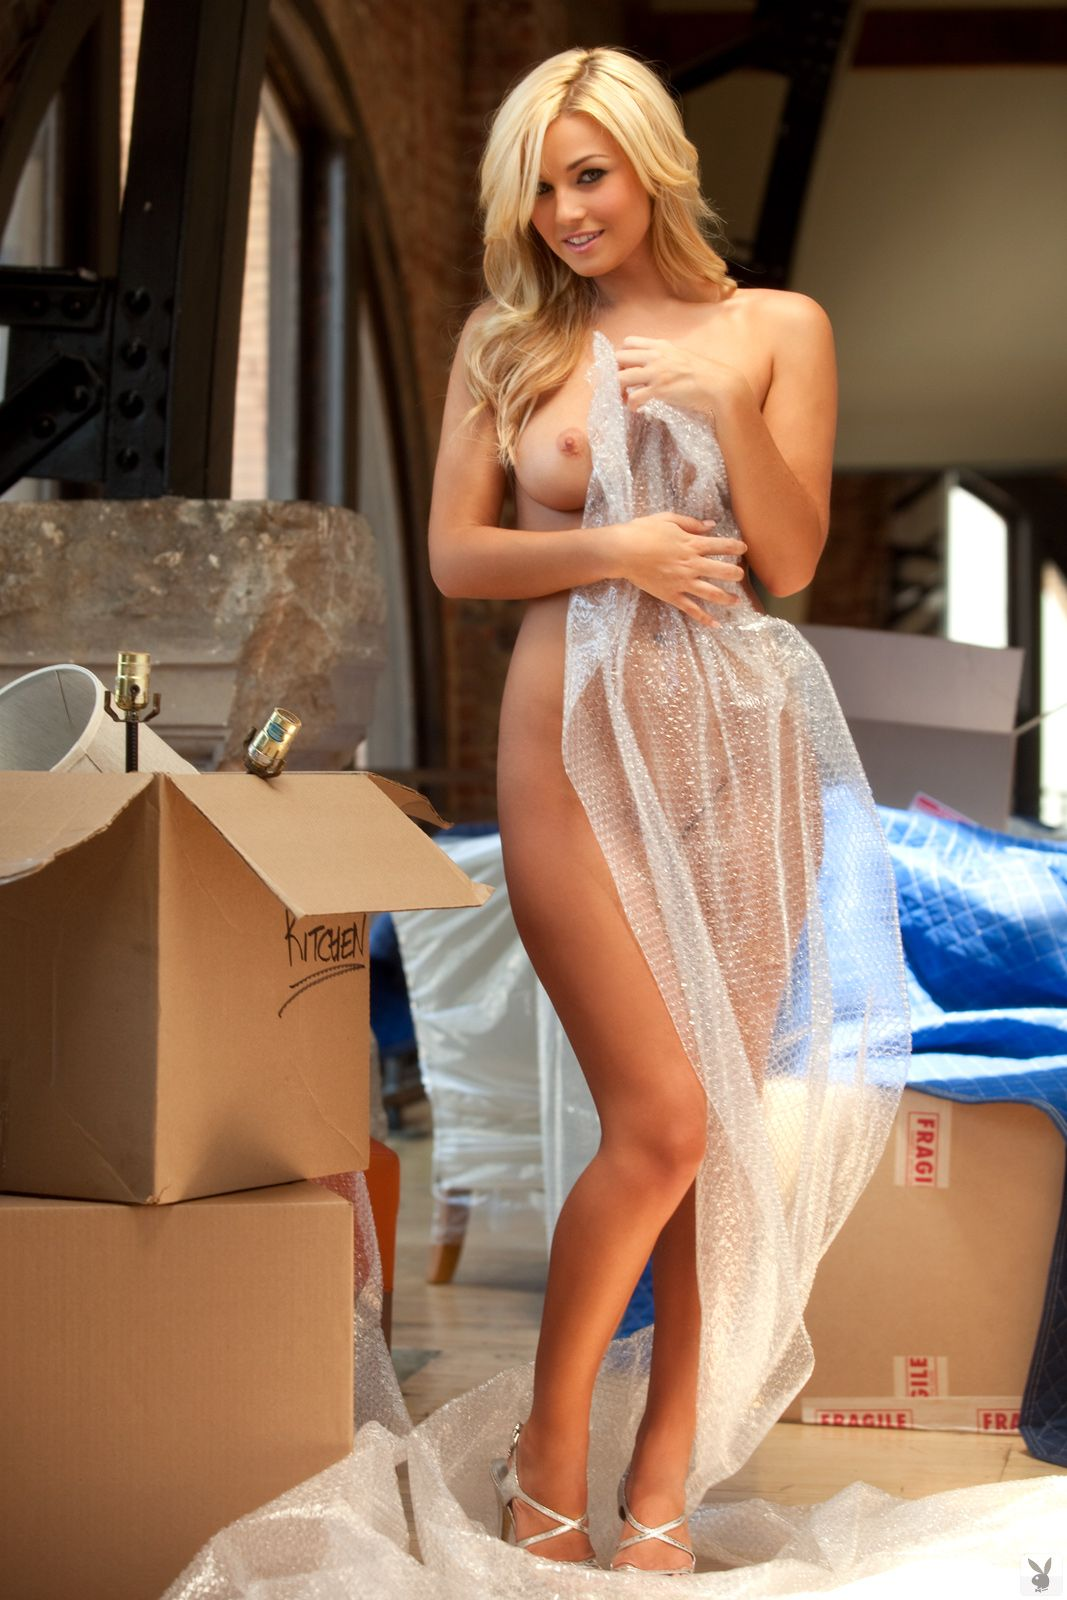 ciara price 012   hot photo of ciara price by playboy only on i